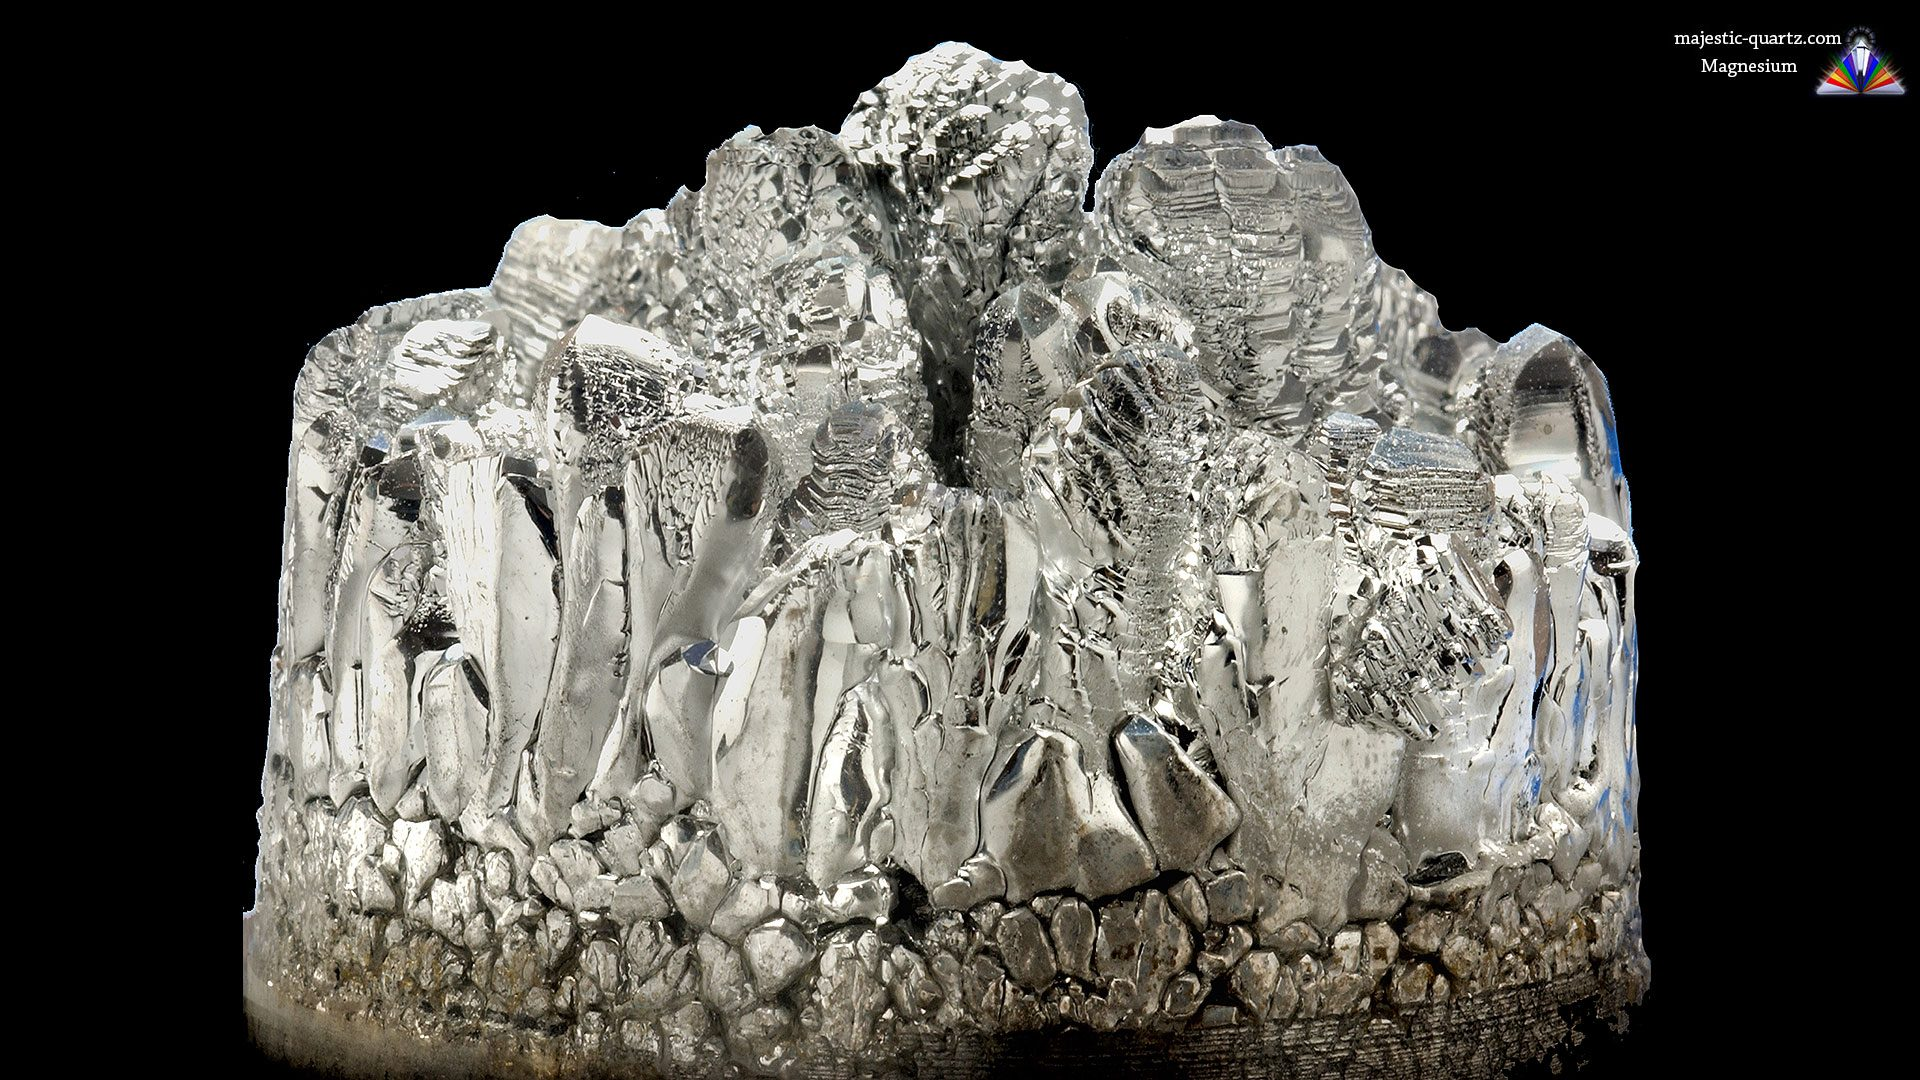 Magnesium Properties and Meaning - Mineral Specimen